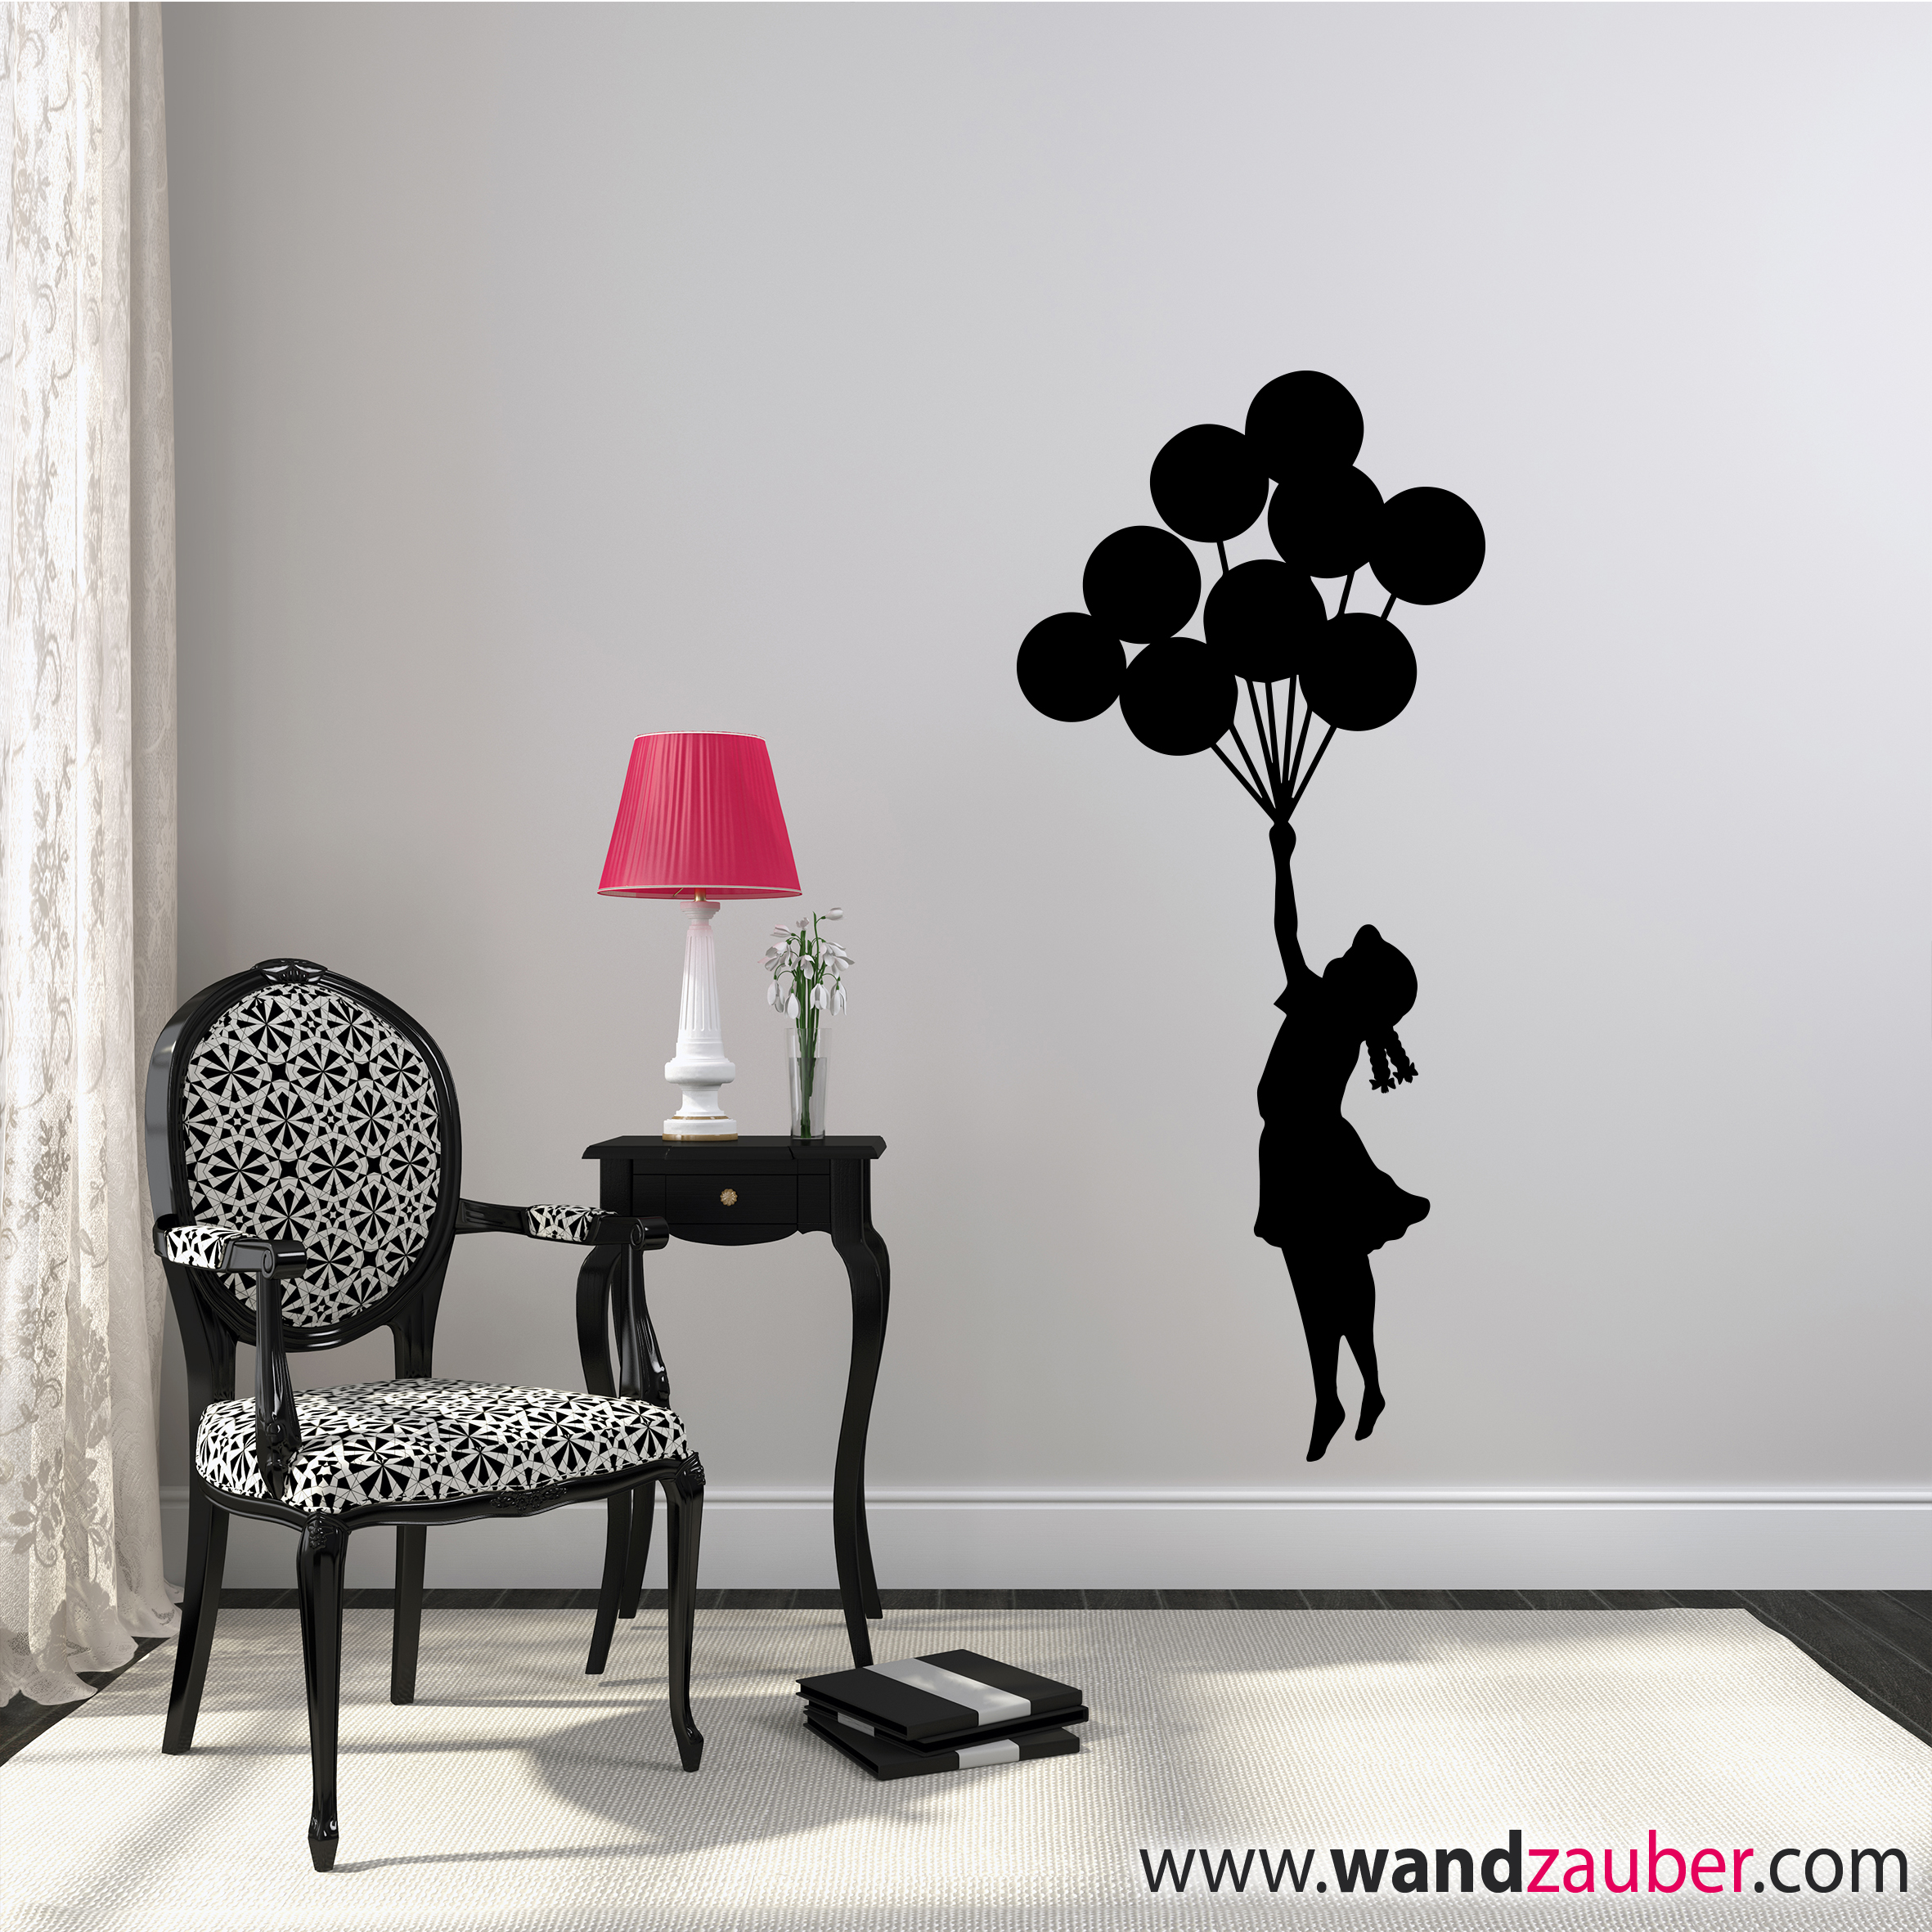 wandtattoo m dchen mit luftballon reuniecollegenoetsele. Black Bedroom Furniture Sets. Home Design Ideas